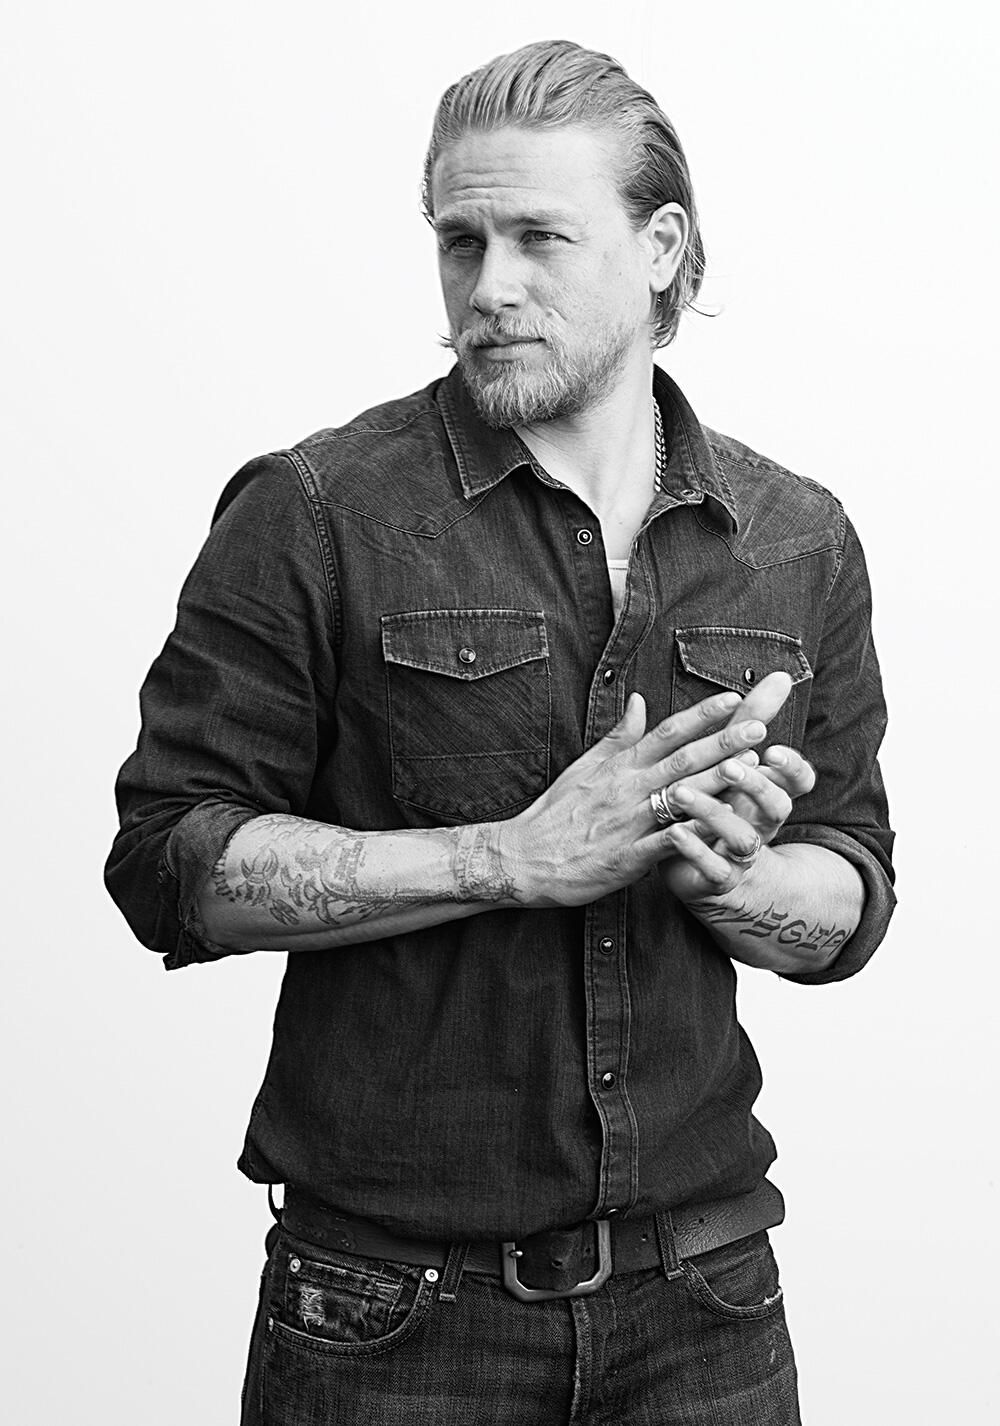 Charlie Hunnam Fans On Twitter Charlie Hunnam Sons Of Anarchy Jax Teller